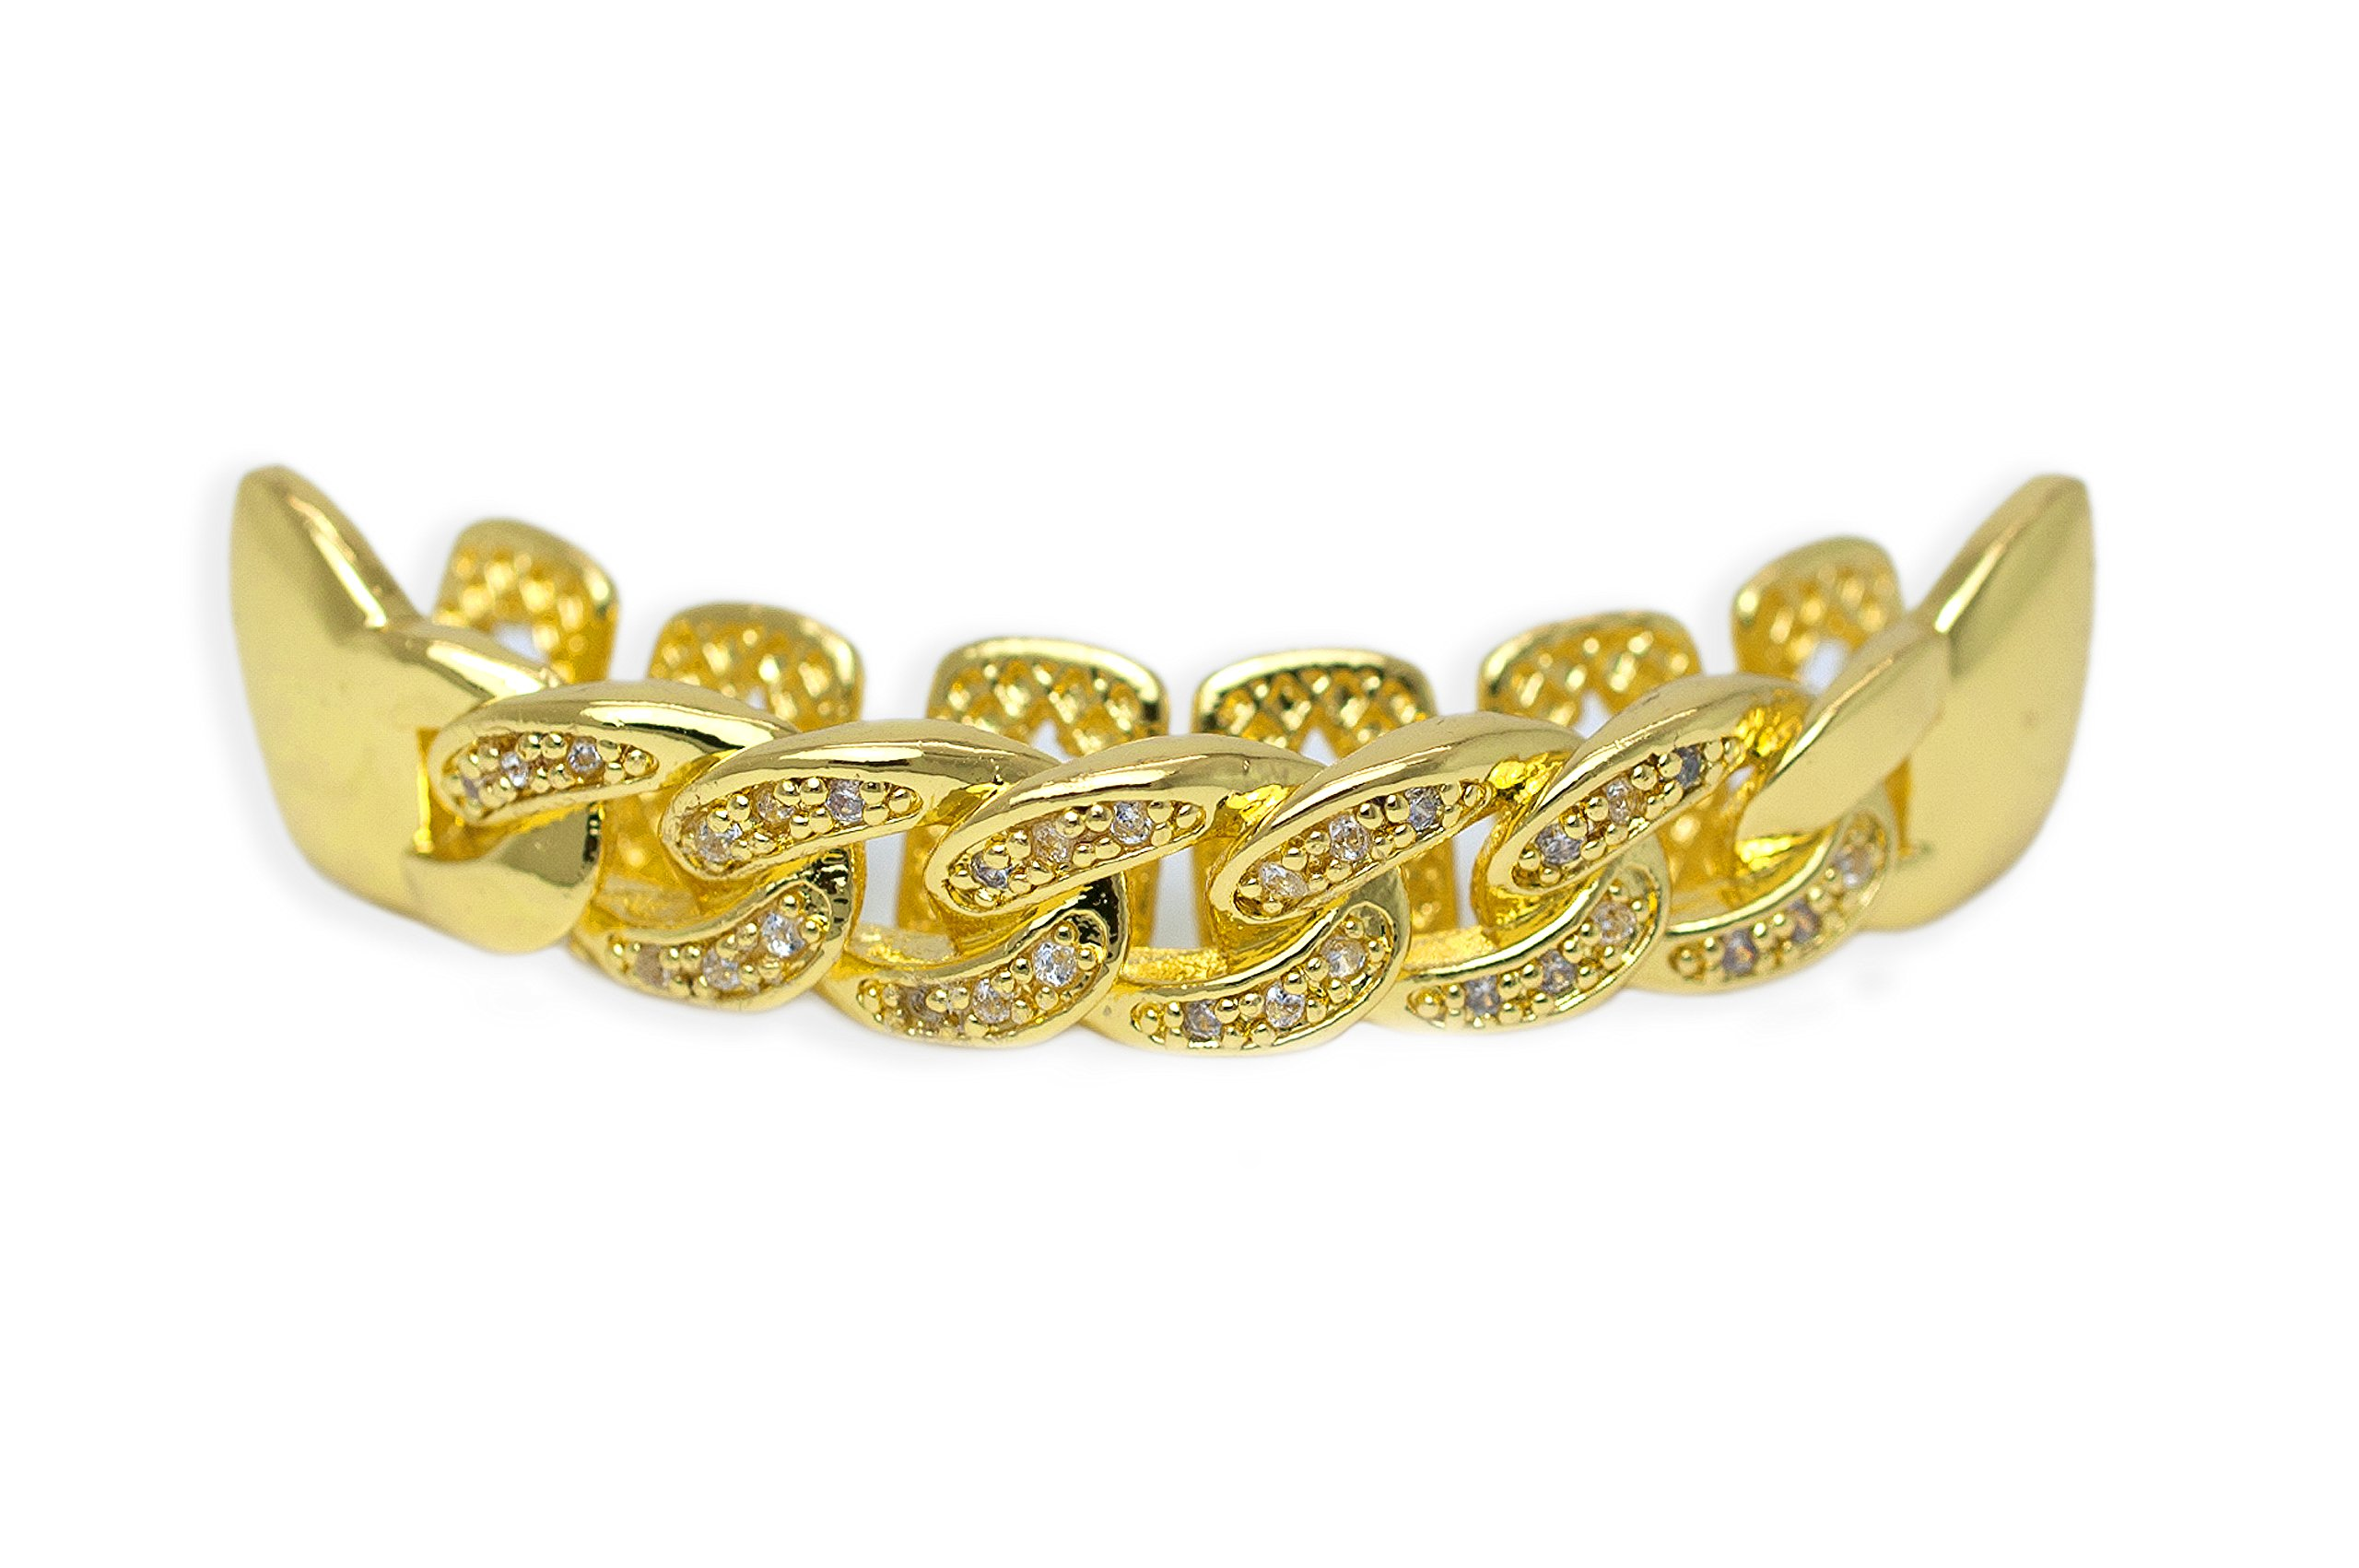 Yellow Gold-Tone Iced Out Hip Hop Bling Open Face Cubic Zirconia (CZ) Cuban Link Removable Grill Grillz Combo Set with Mold Bar by iRockBling (Image #2)